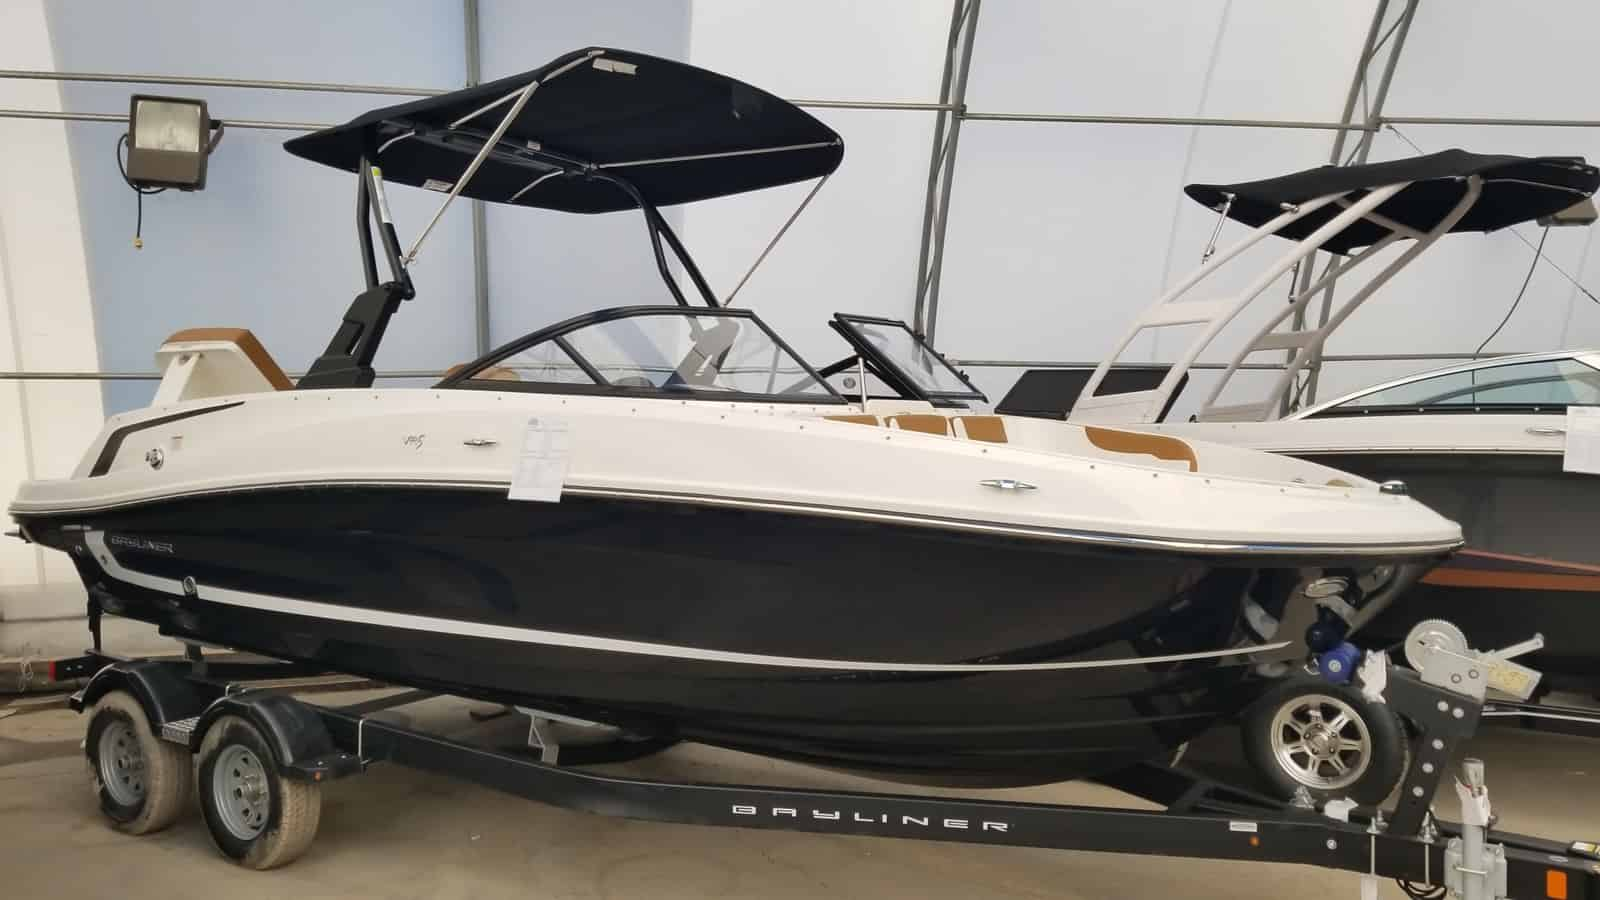 NEW 2019 Bayliner VR5 Xtreme Tower - Shipwreck Marine